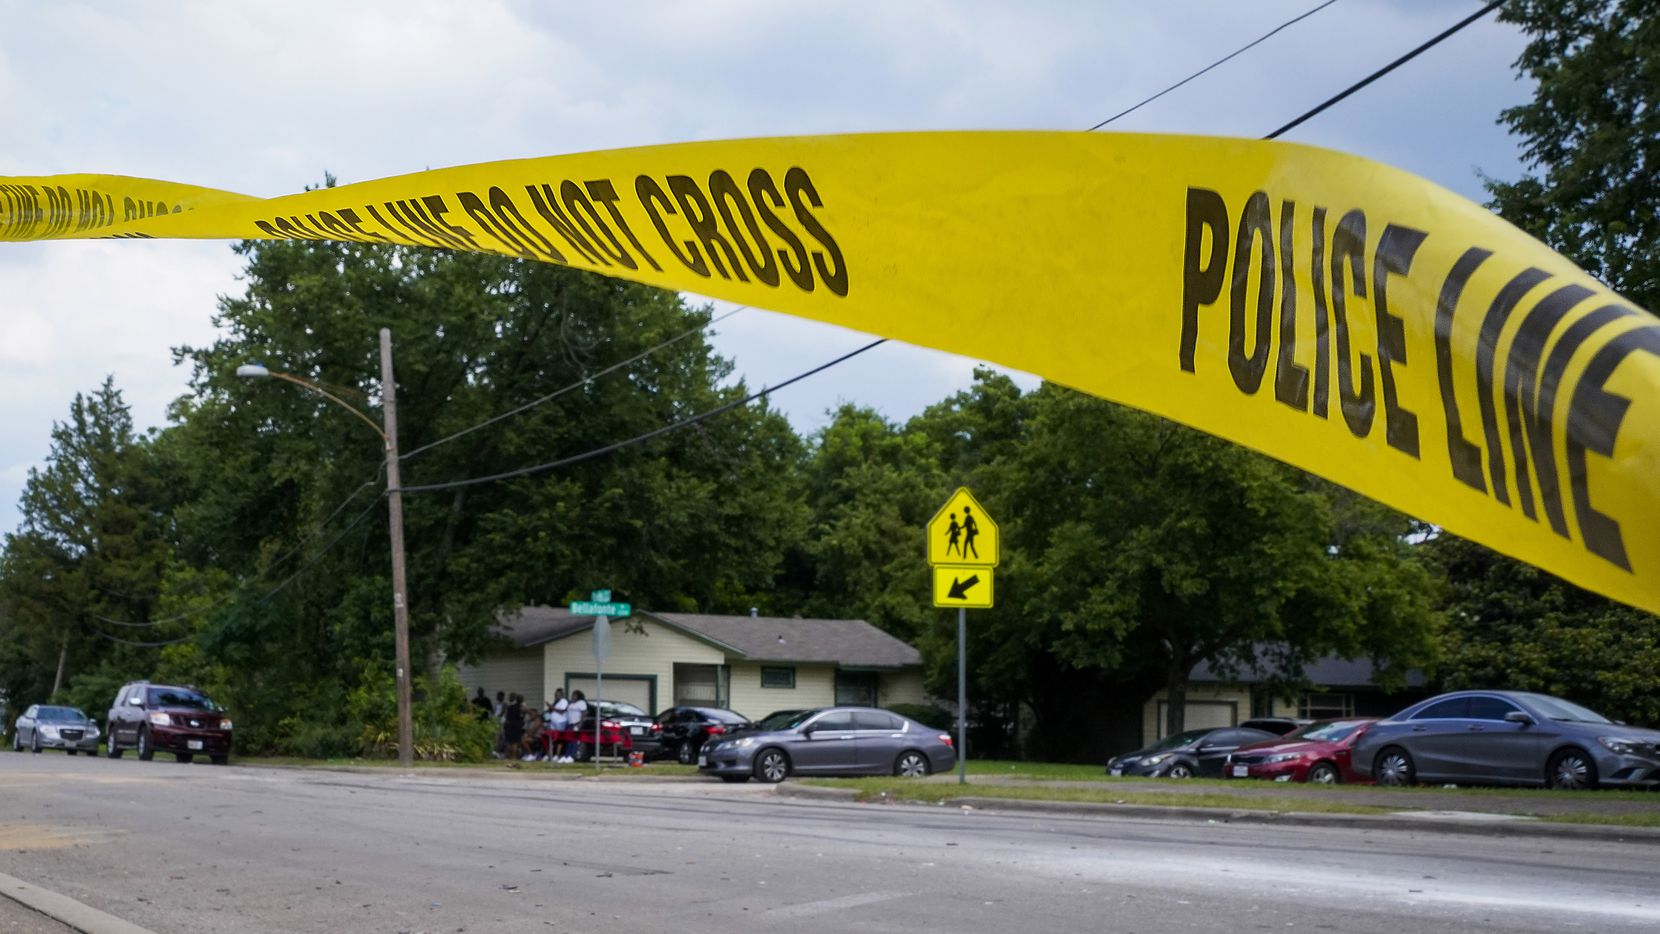 Police tape flutters at the scene scene of a shooting in the 8300 block of Towns St.  in Hamilton Park on July 5, 2021, in Dallas. Five people were shot as a party wound down about 11:15 p.m. on July Fourth. Three of those have died.